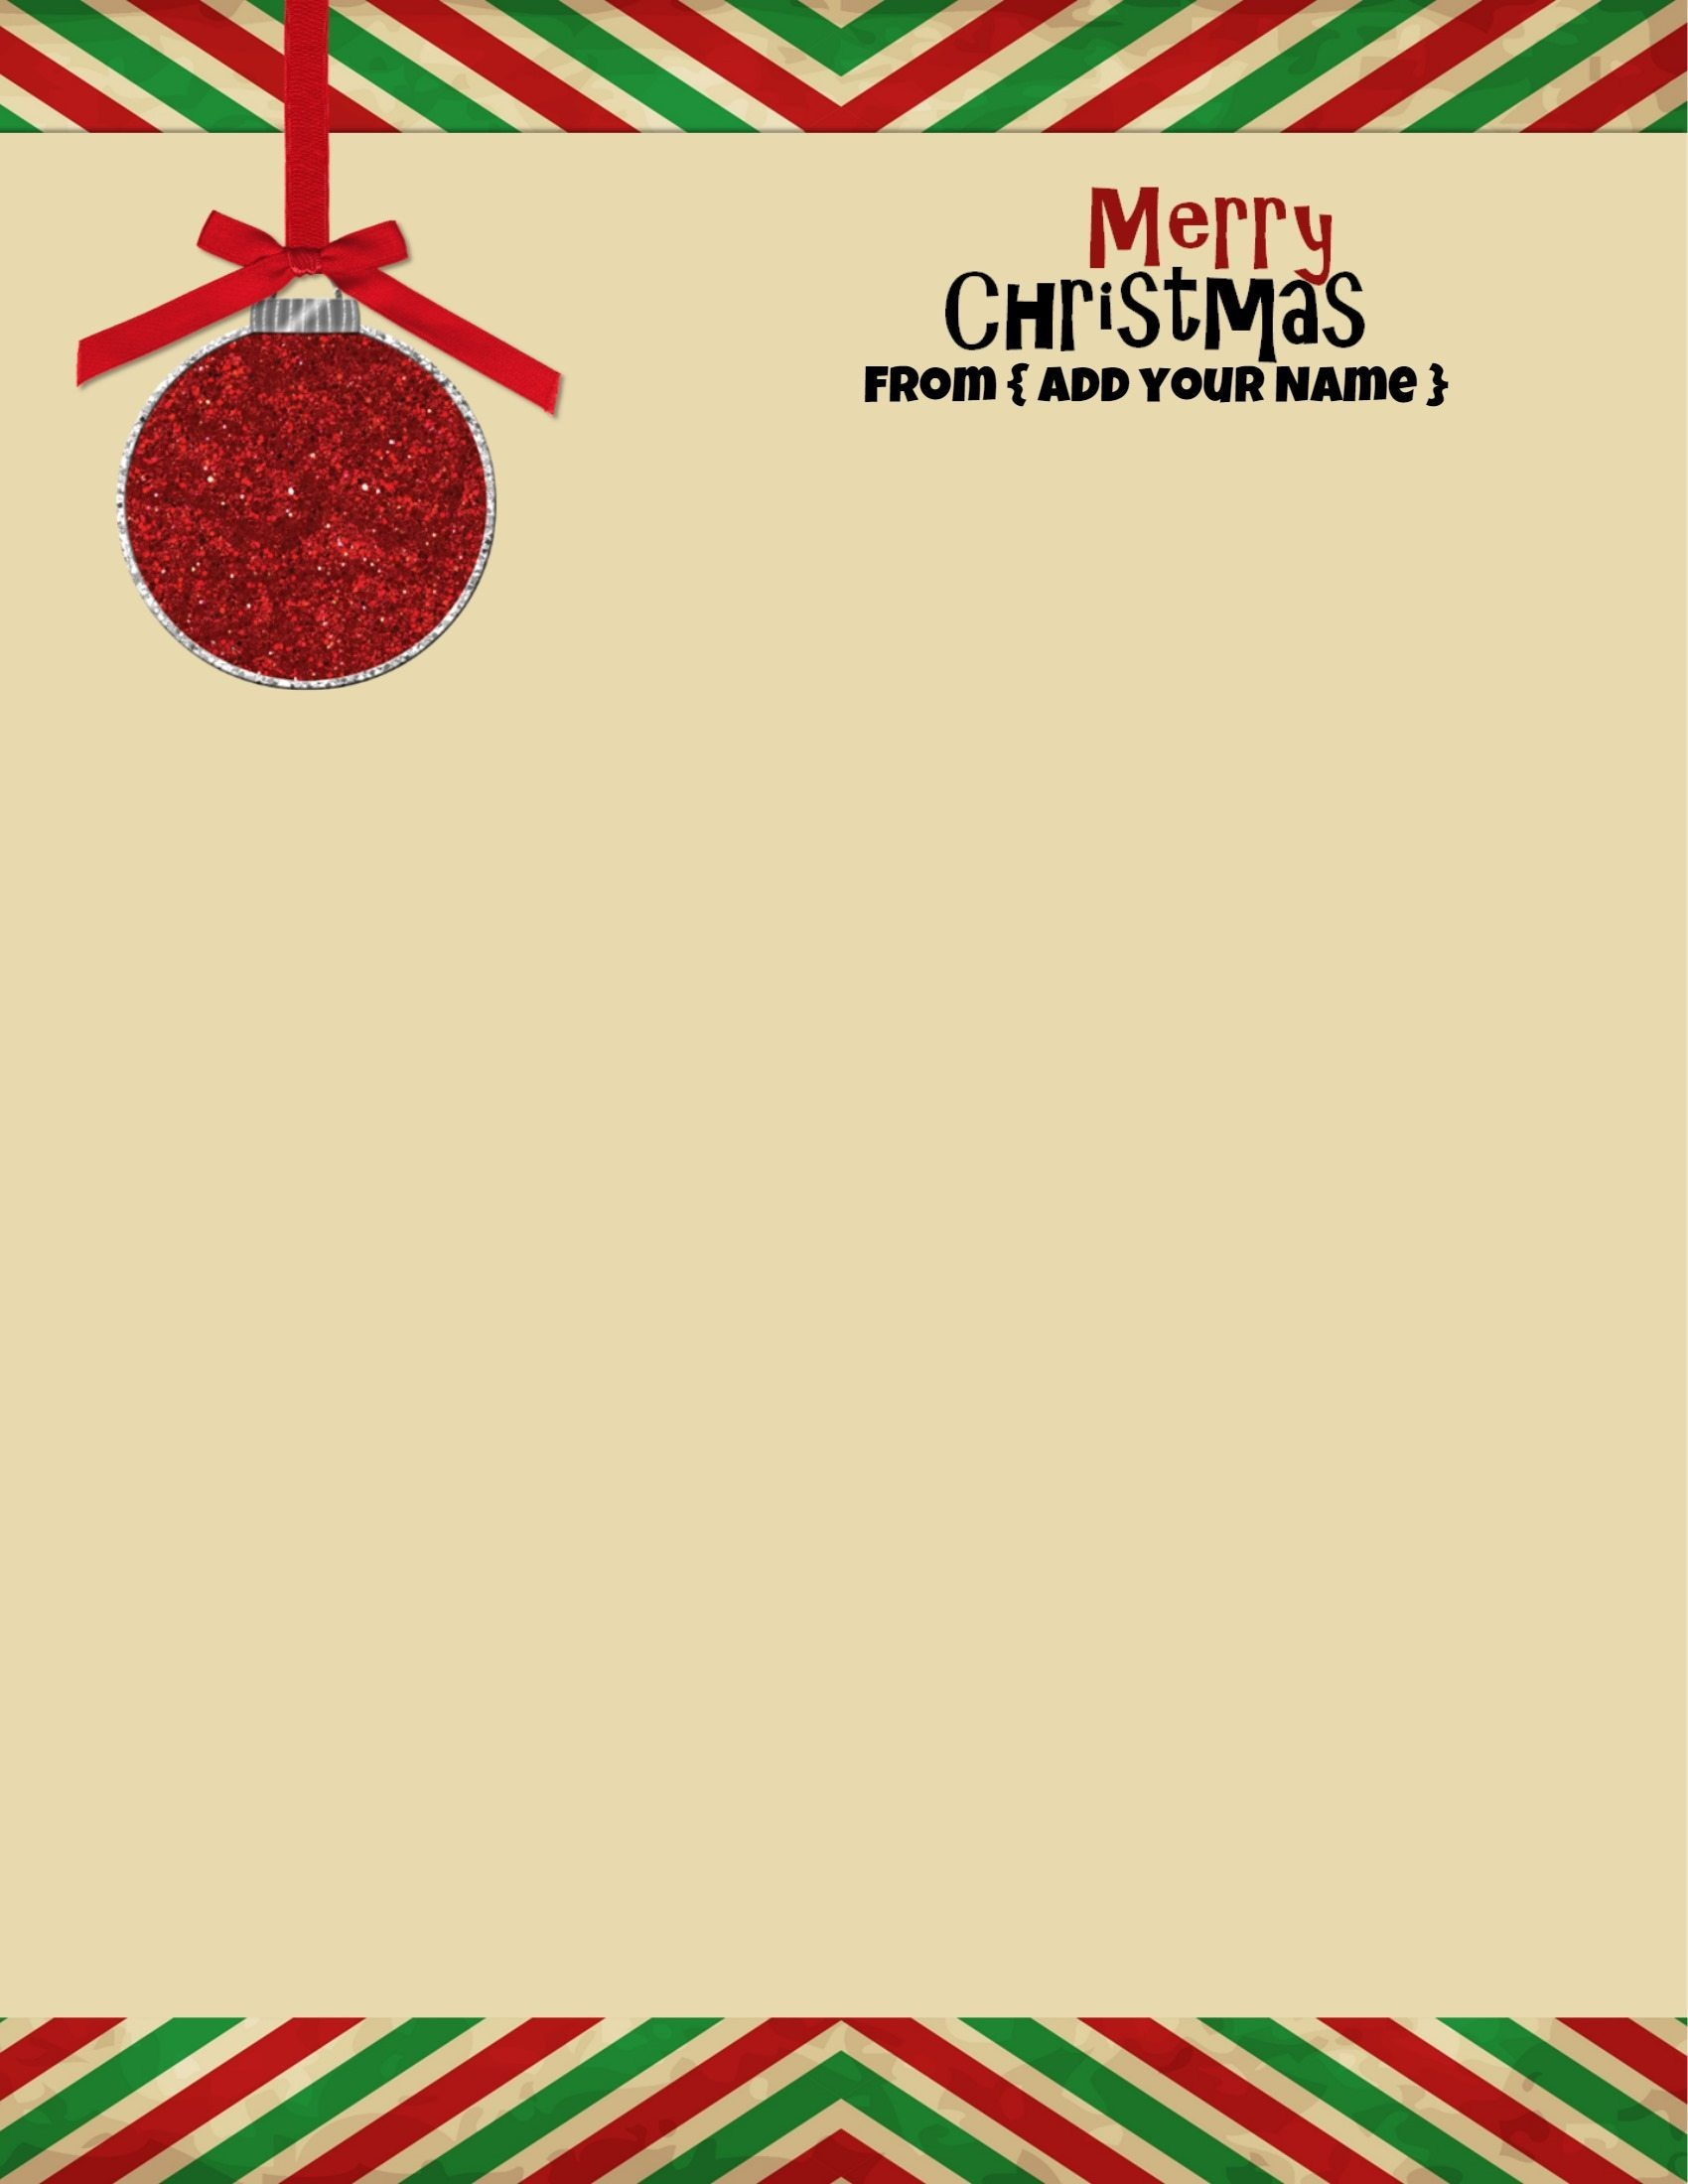 Free Personalized Christmas Stationery - Free Printable Christmas Stationery For Kids